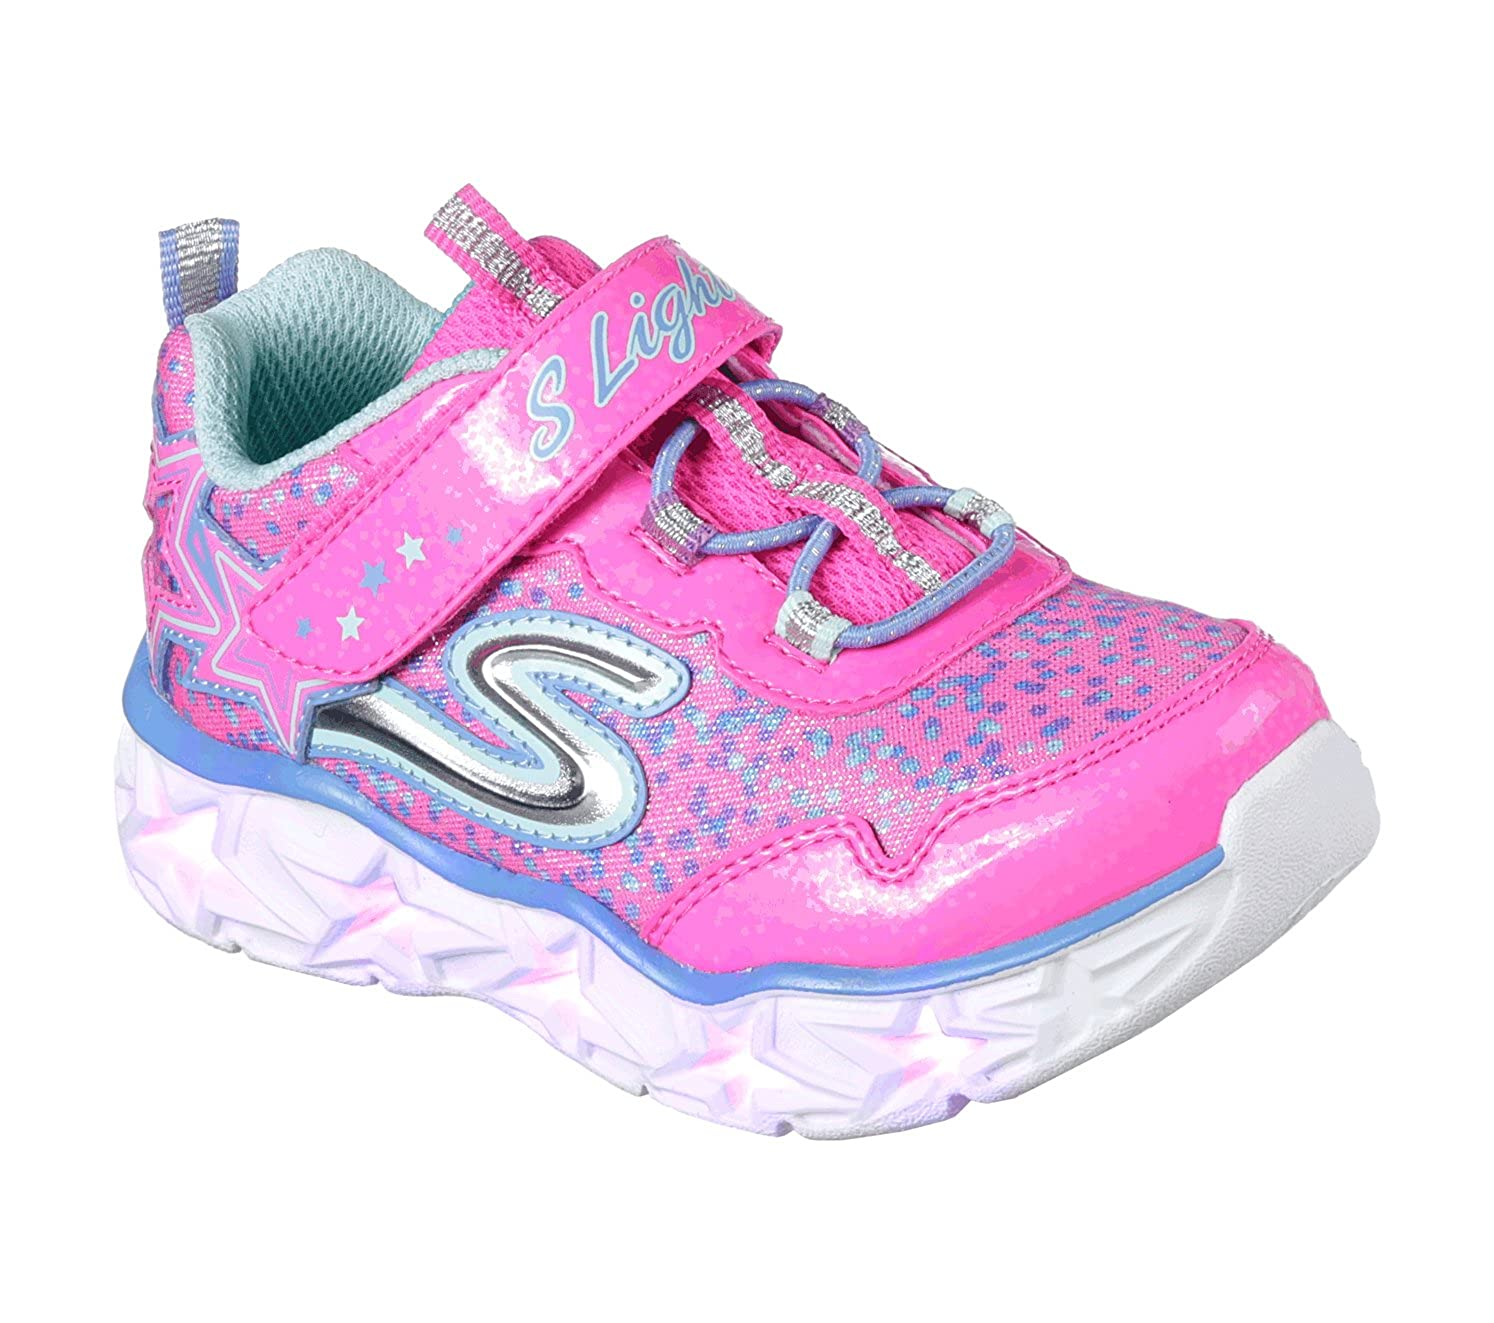 Skechers Galaxy Lights, Baskets Fille Fille Neon Baskets Neon Pink/Multi fcabf38 - piero.space